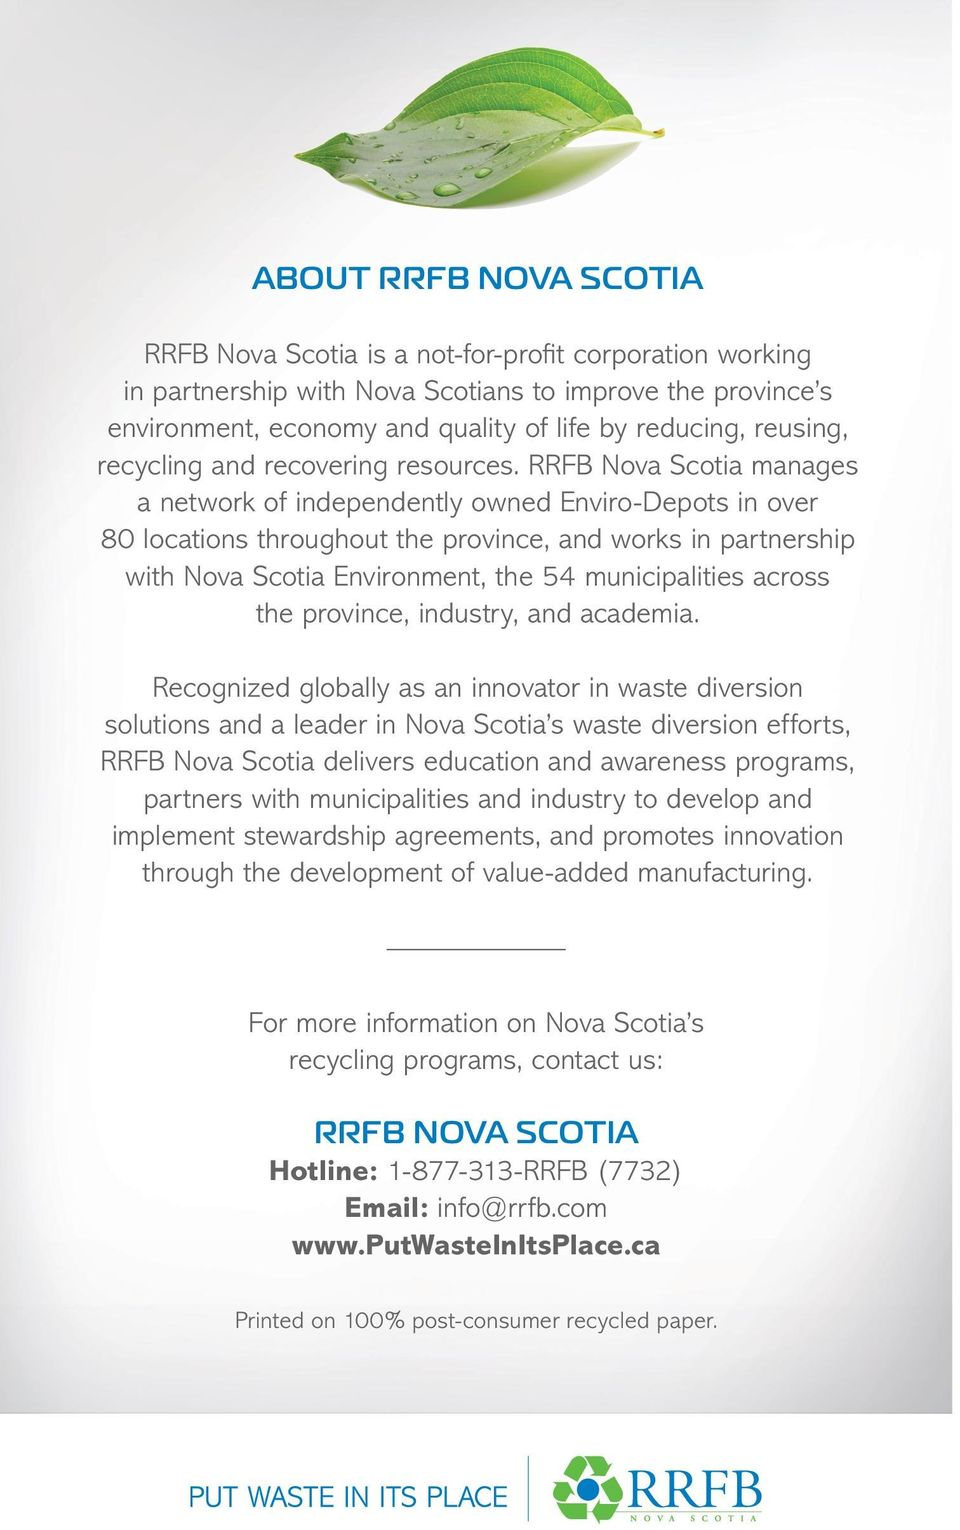 RRFB Nova Scotia manages a network of independently owned Enviro-Depots in over 80 locations throughout the province, and works in partnership with Nova Scotia Environment, the 54 municipalities